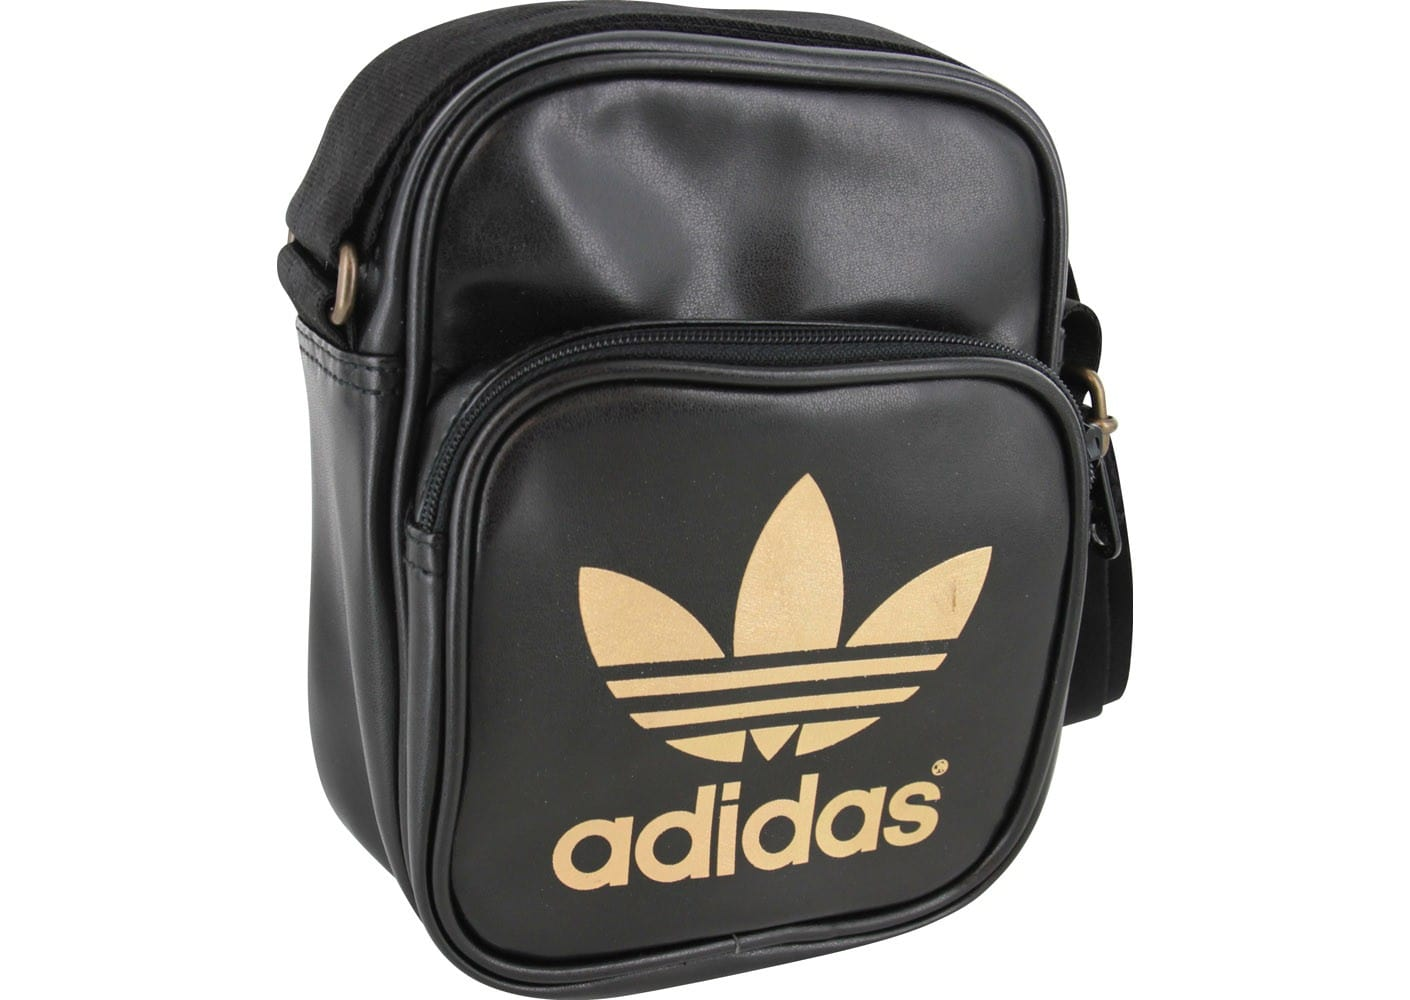 adidas sacoche mini bag noire adidas chausport. Black Bedroom Furniture Sets. Home Design Ideas